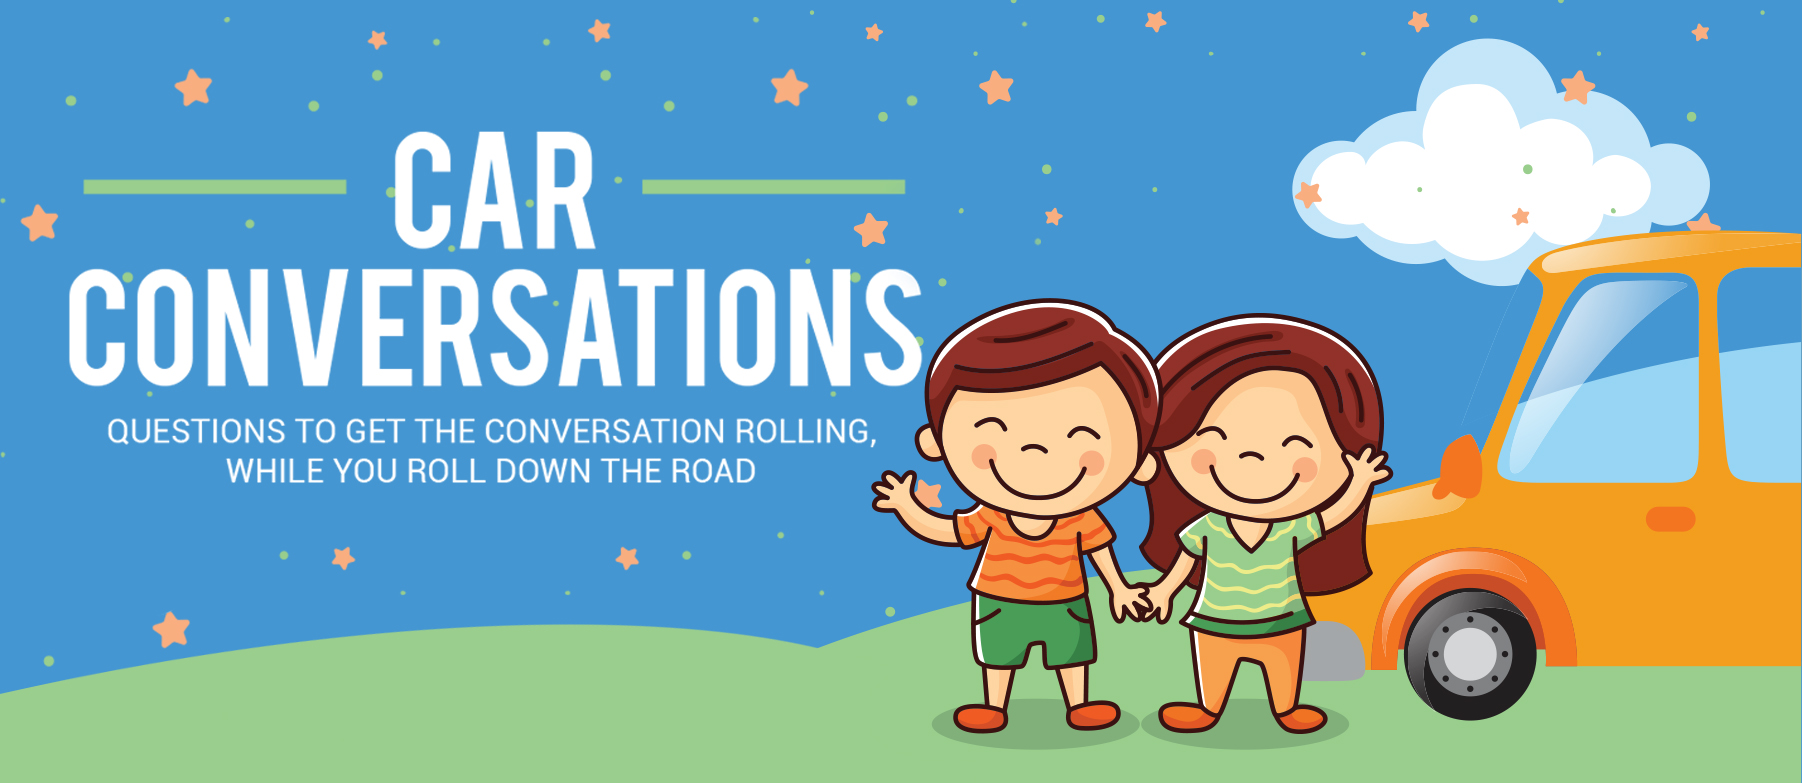 When your family hits the road for some summer fun take along these car conversation starters! Learn about one another while taking turns asking and answering. Make your summer time count as you focus on making some memories and finding out new things about one another.